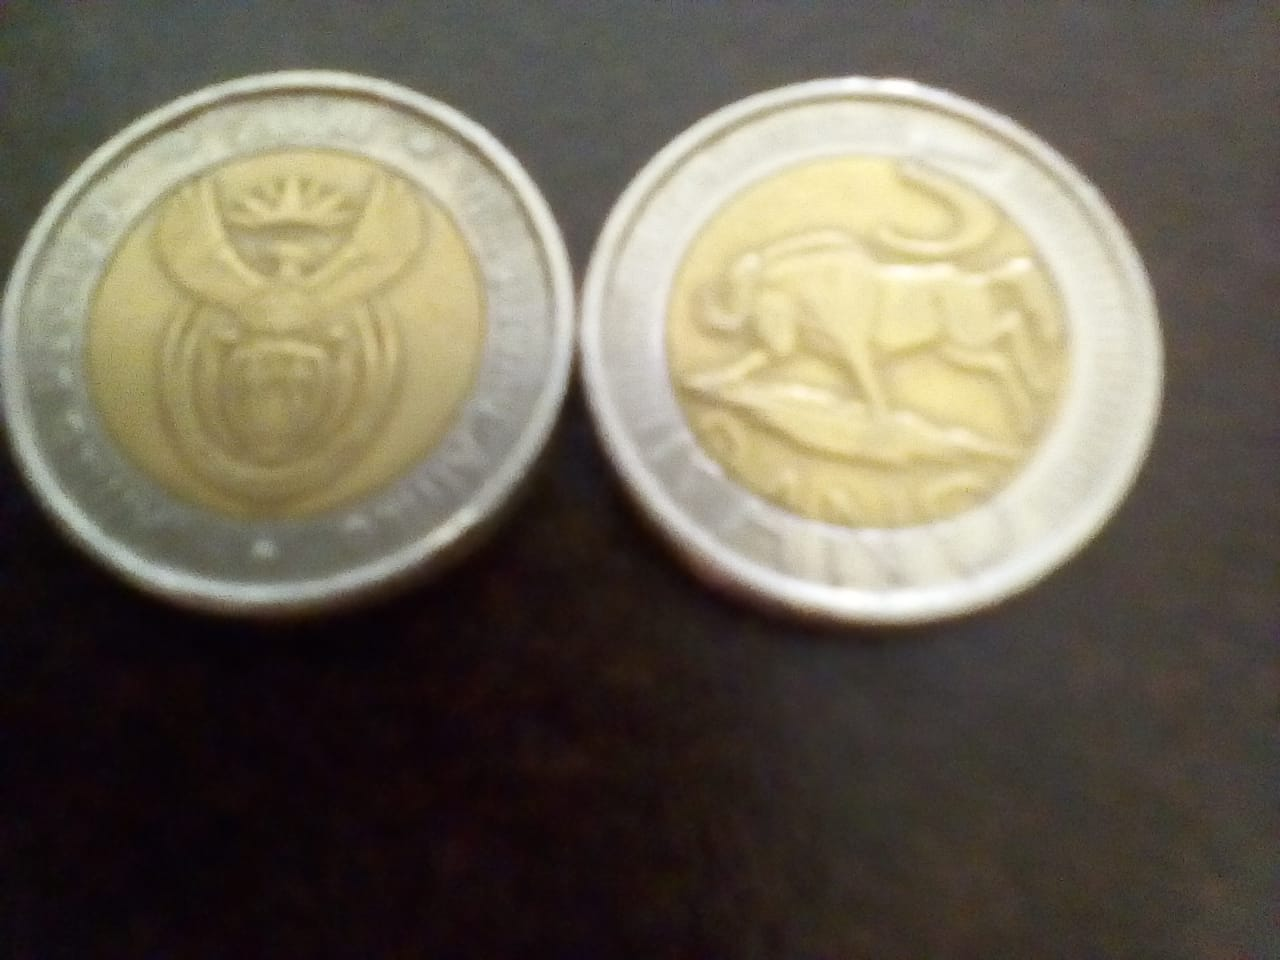 R5 Gold and silver coins